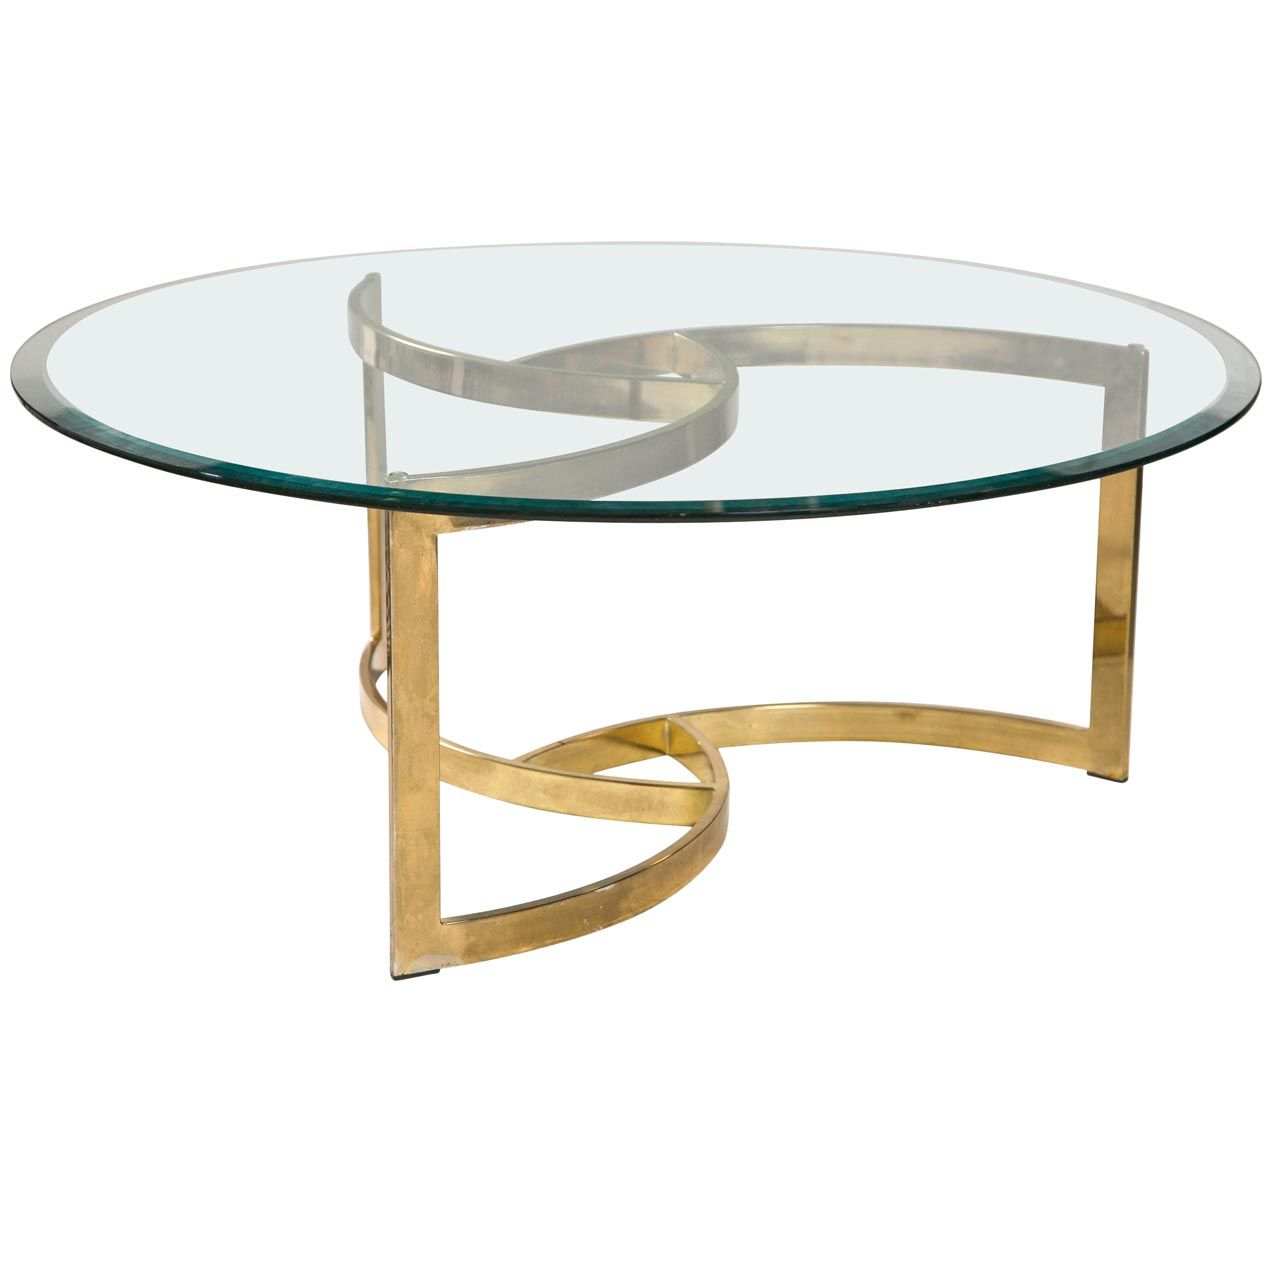 Most Popular Elke Glass Console Tables With Brass Base With Glass Coffee Table Gold Legs (Gallery 4 of 20)